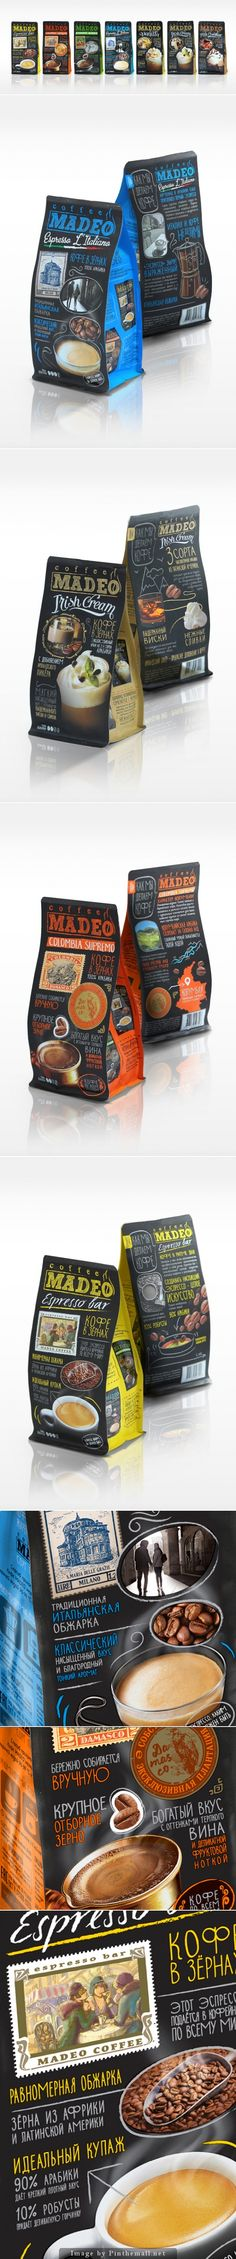 Madeo #Coffee, Creative Agency: Getbrand - http://www.packagingoftheworld.com/2014/10/madeo-coffee.html